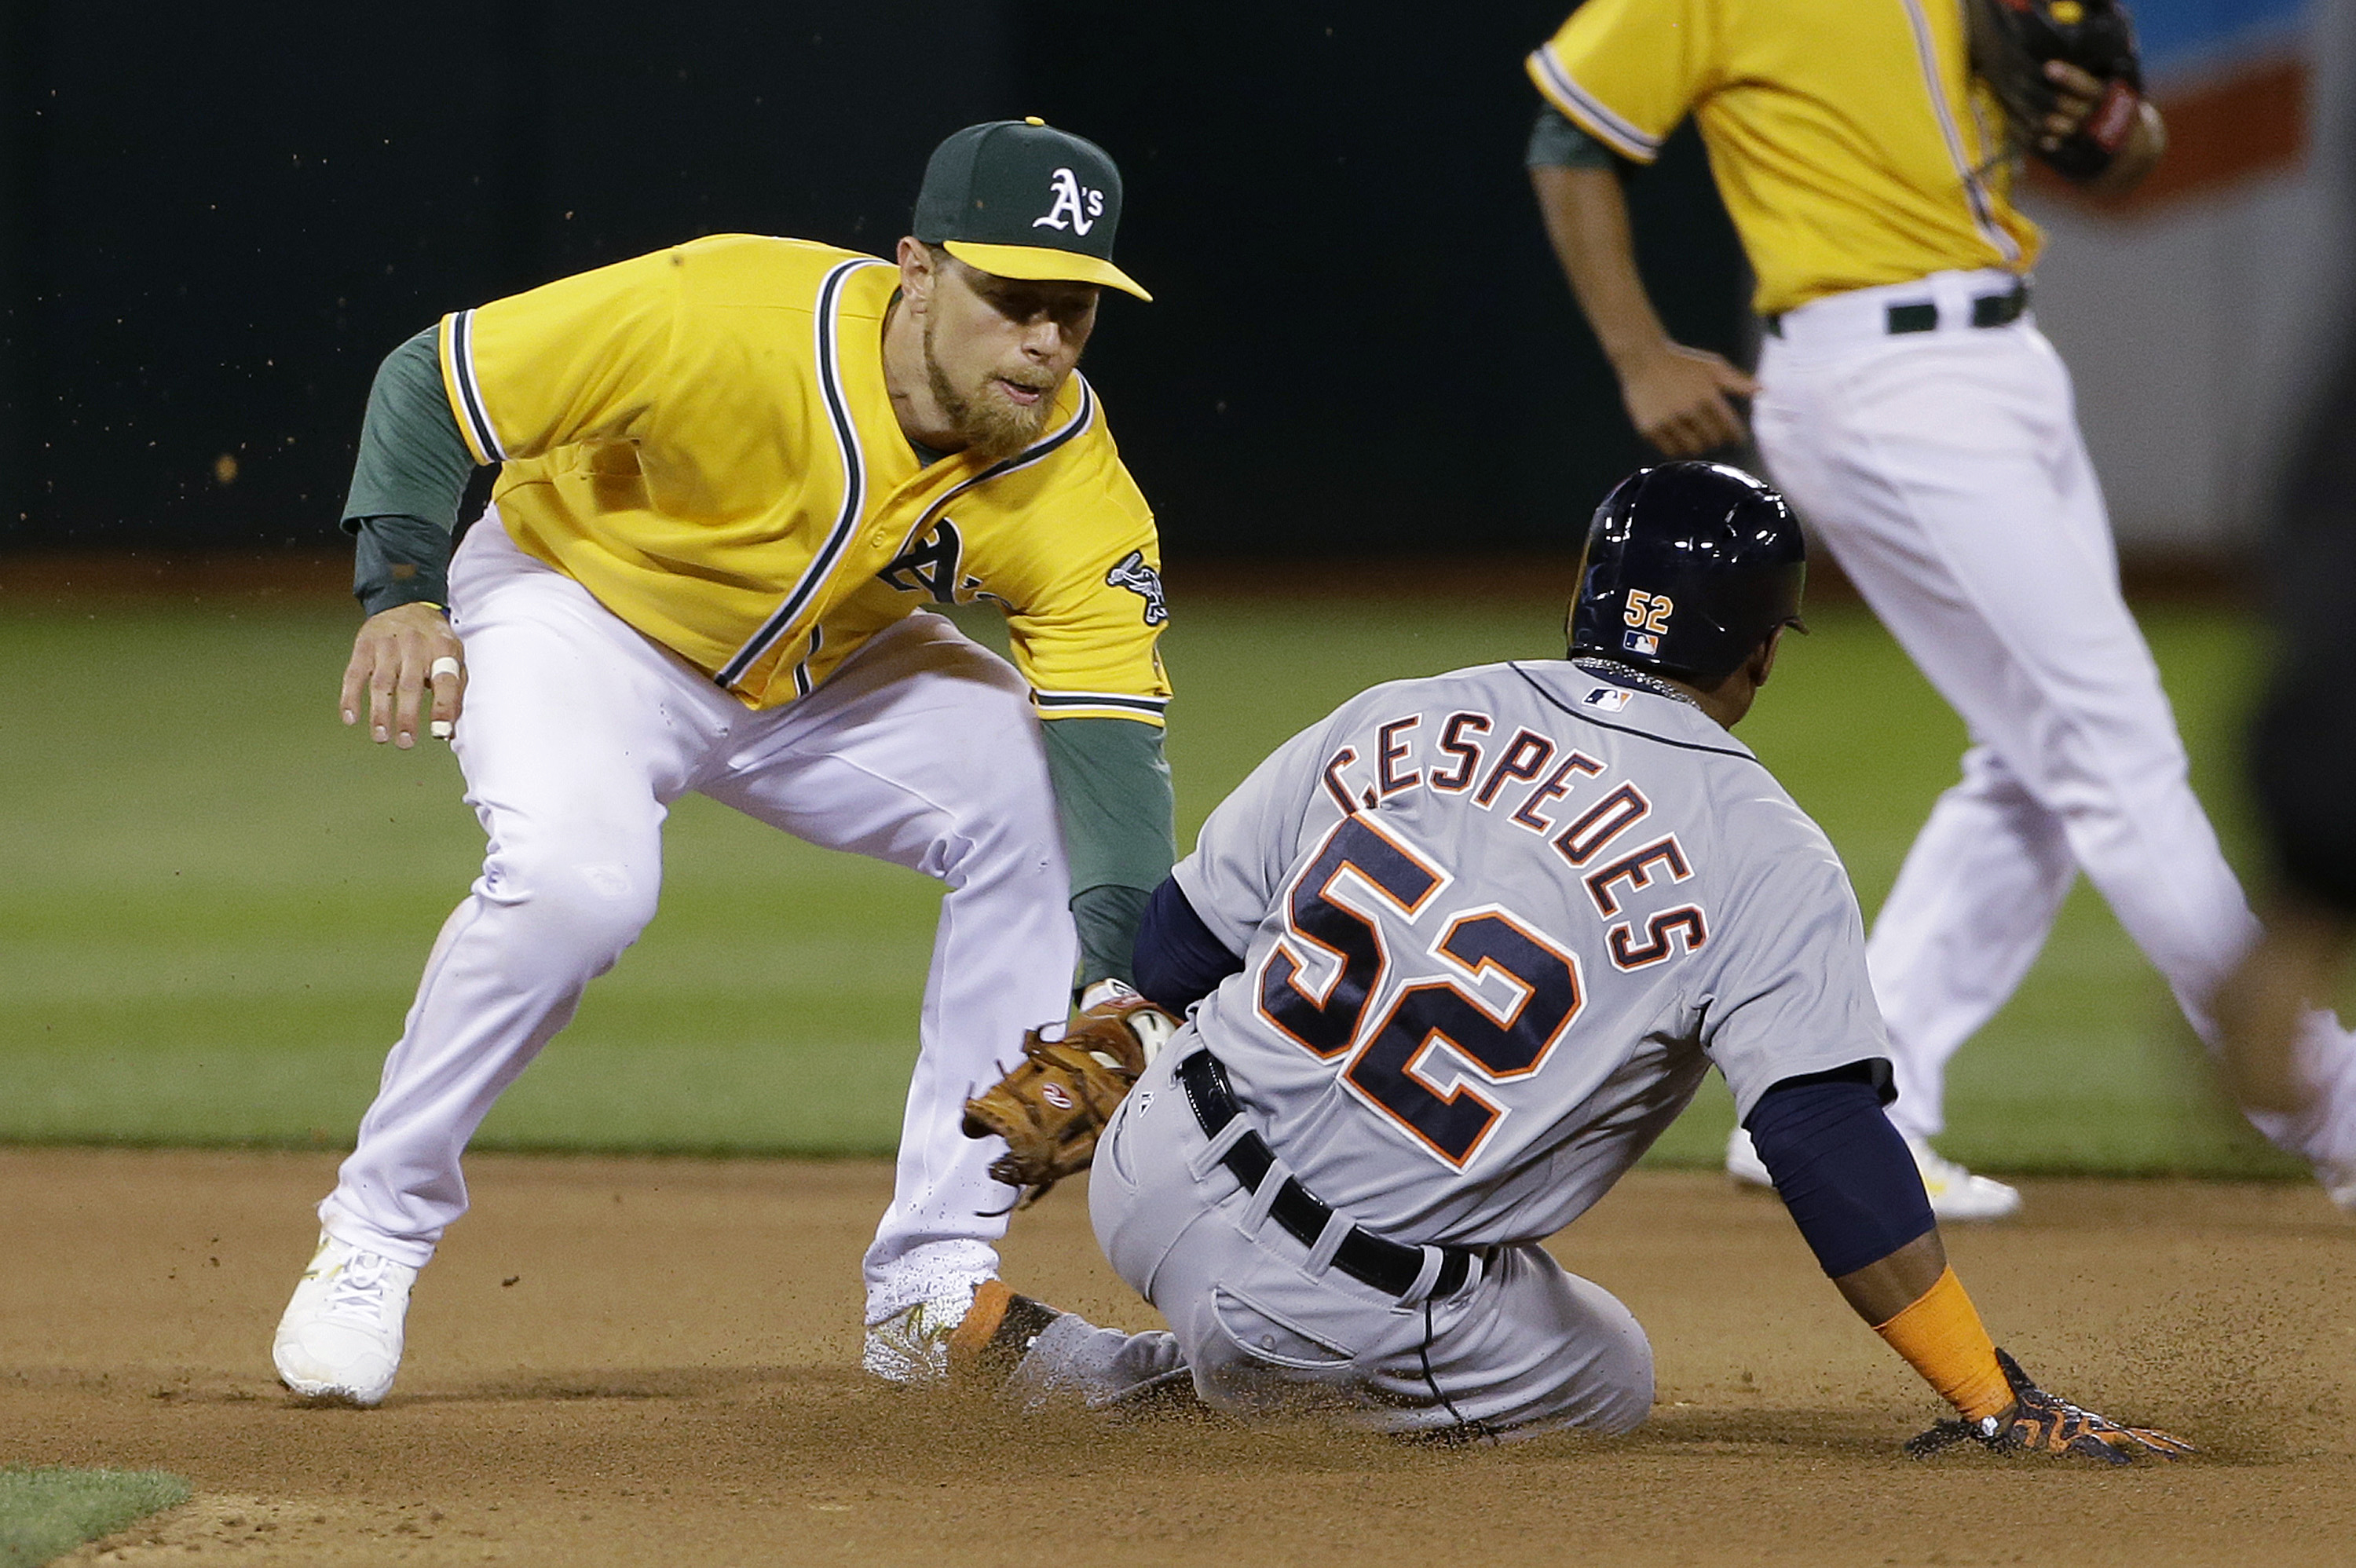 Detroit Tigers' Yoenis Cespedes (52) is tagged out trying to steal second base by Oakland Athletics second baseman Ben Zobrist during the seventh inning of a baseball game in Oakland, Calif., Tuesday, May 26, 2015. (AP Photo/Jeff Chiu)